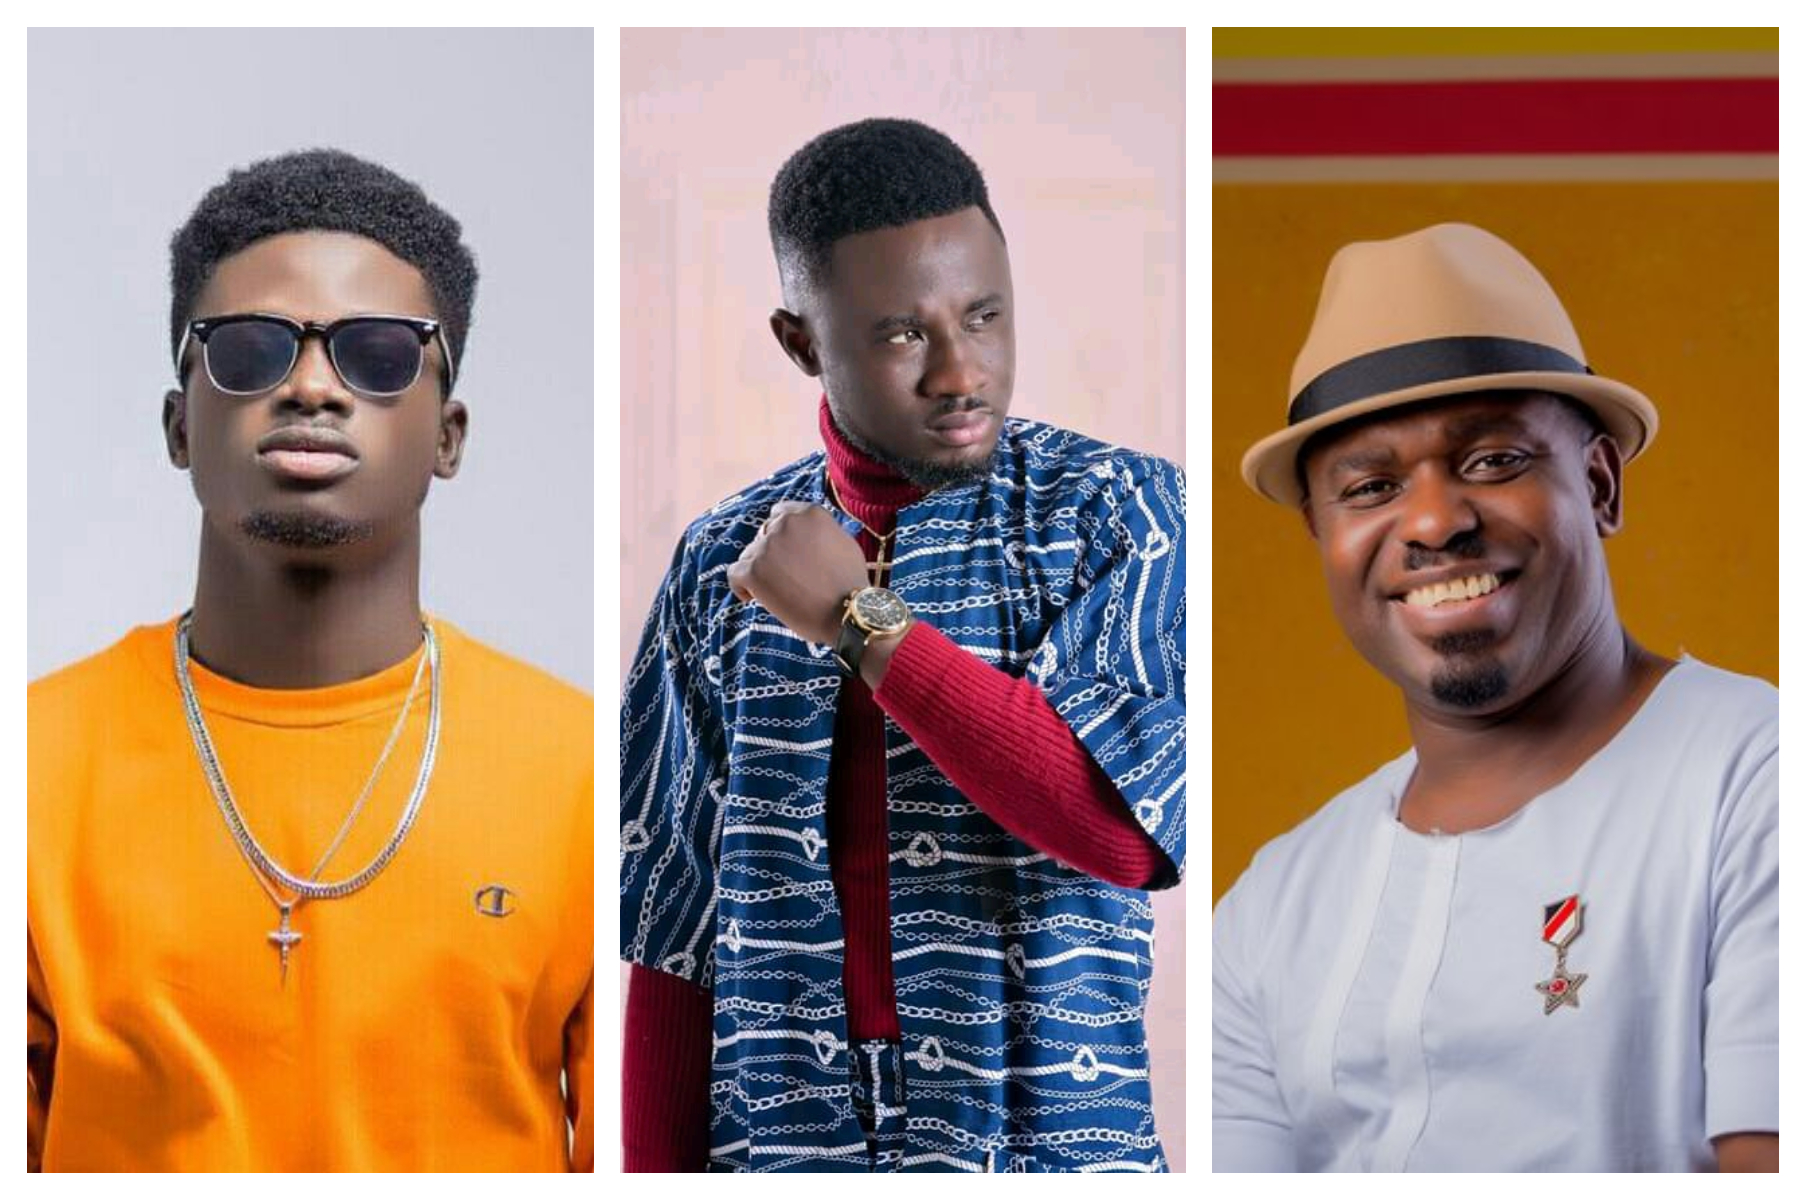 Scott Evans Hints On A Possible Feature With Nacee and Kuami Eugene.